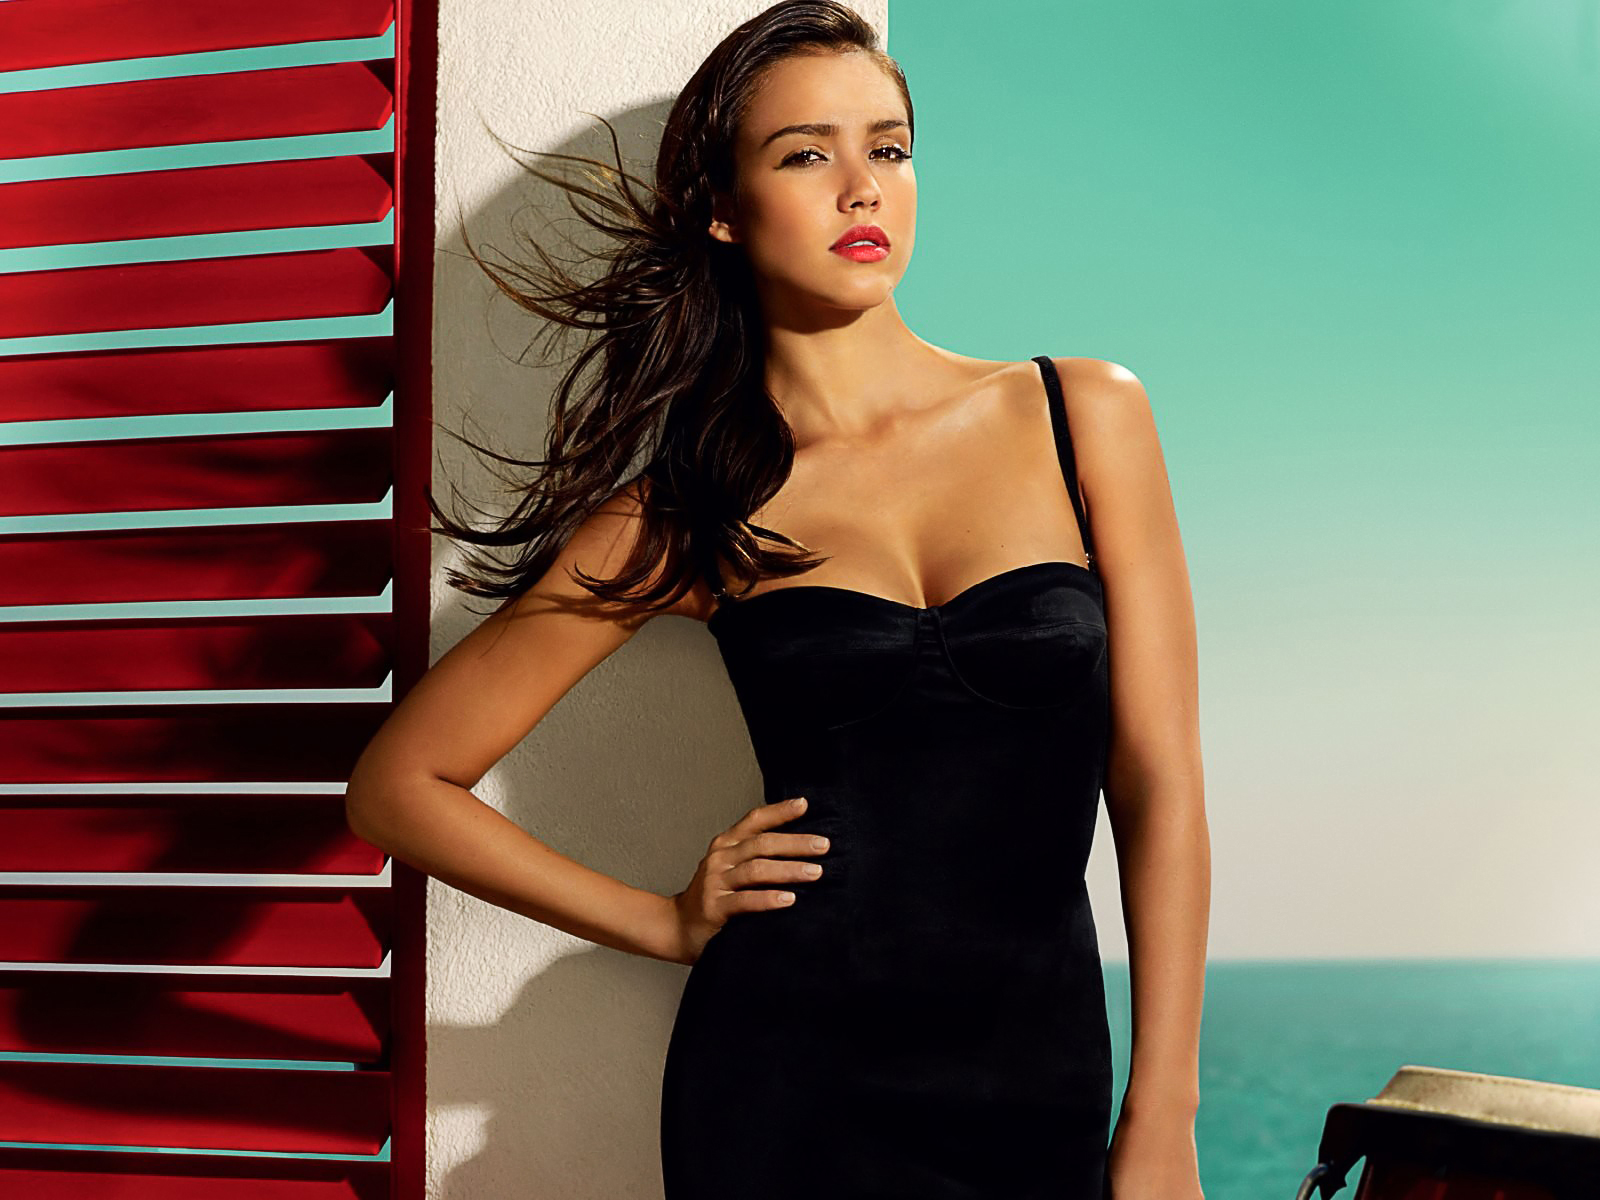 New Smart Girl Wallpaper Download Jessica Alba Hollywood Actor Hd Wallpapers All Hd Wallpapers